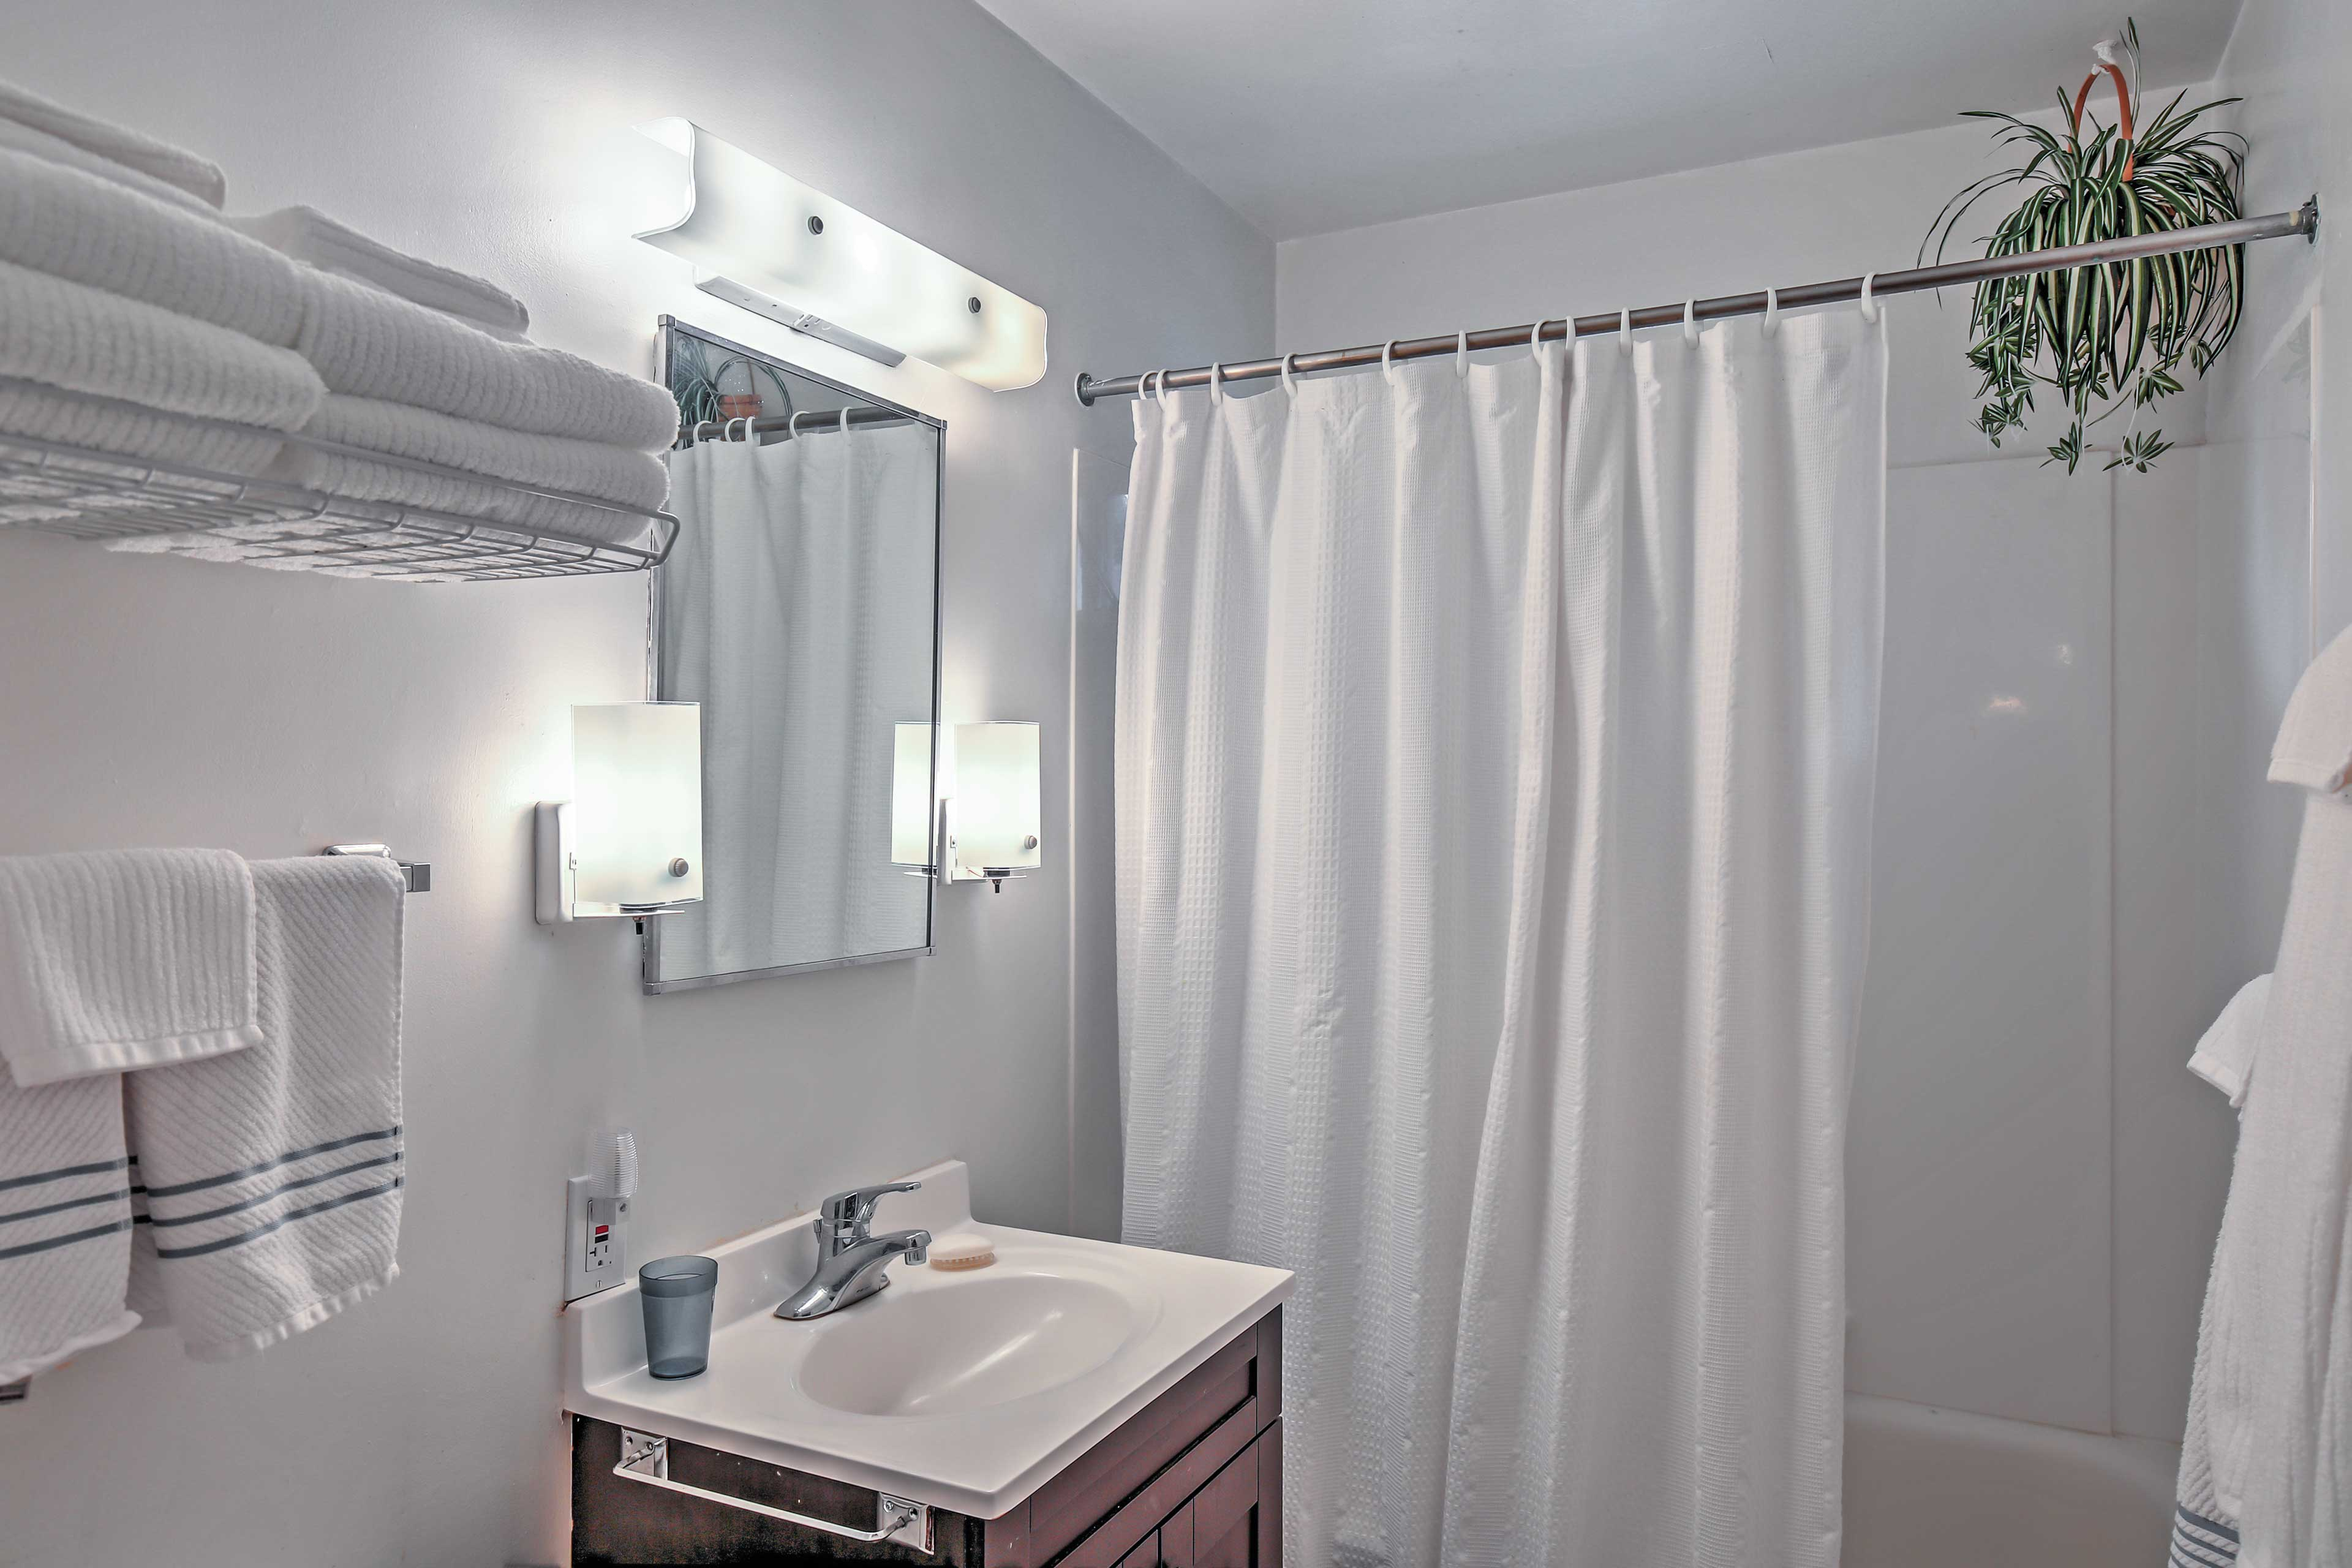 You'll discover all the necessary comforts of home during your stay.